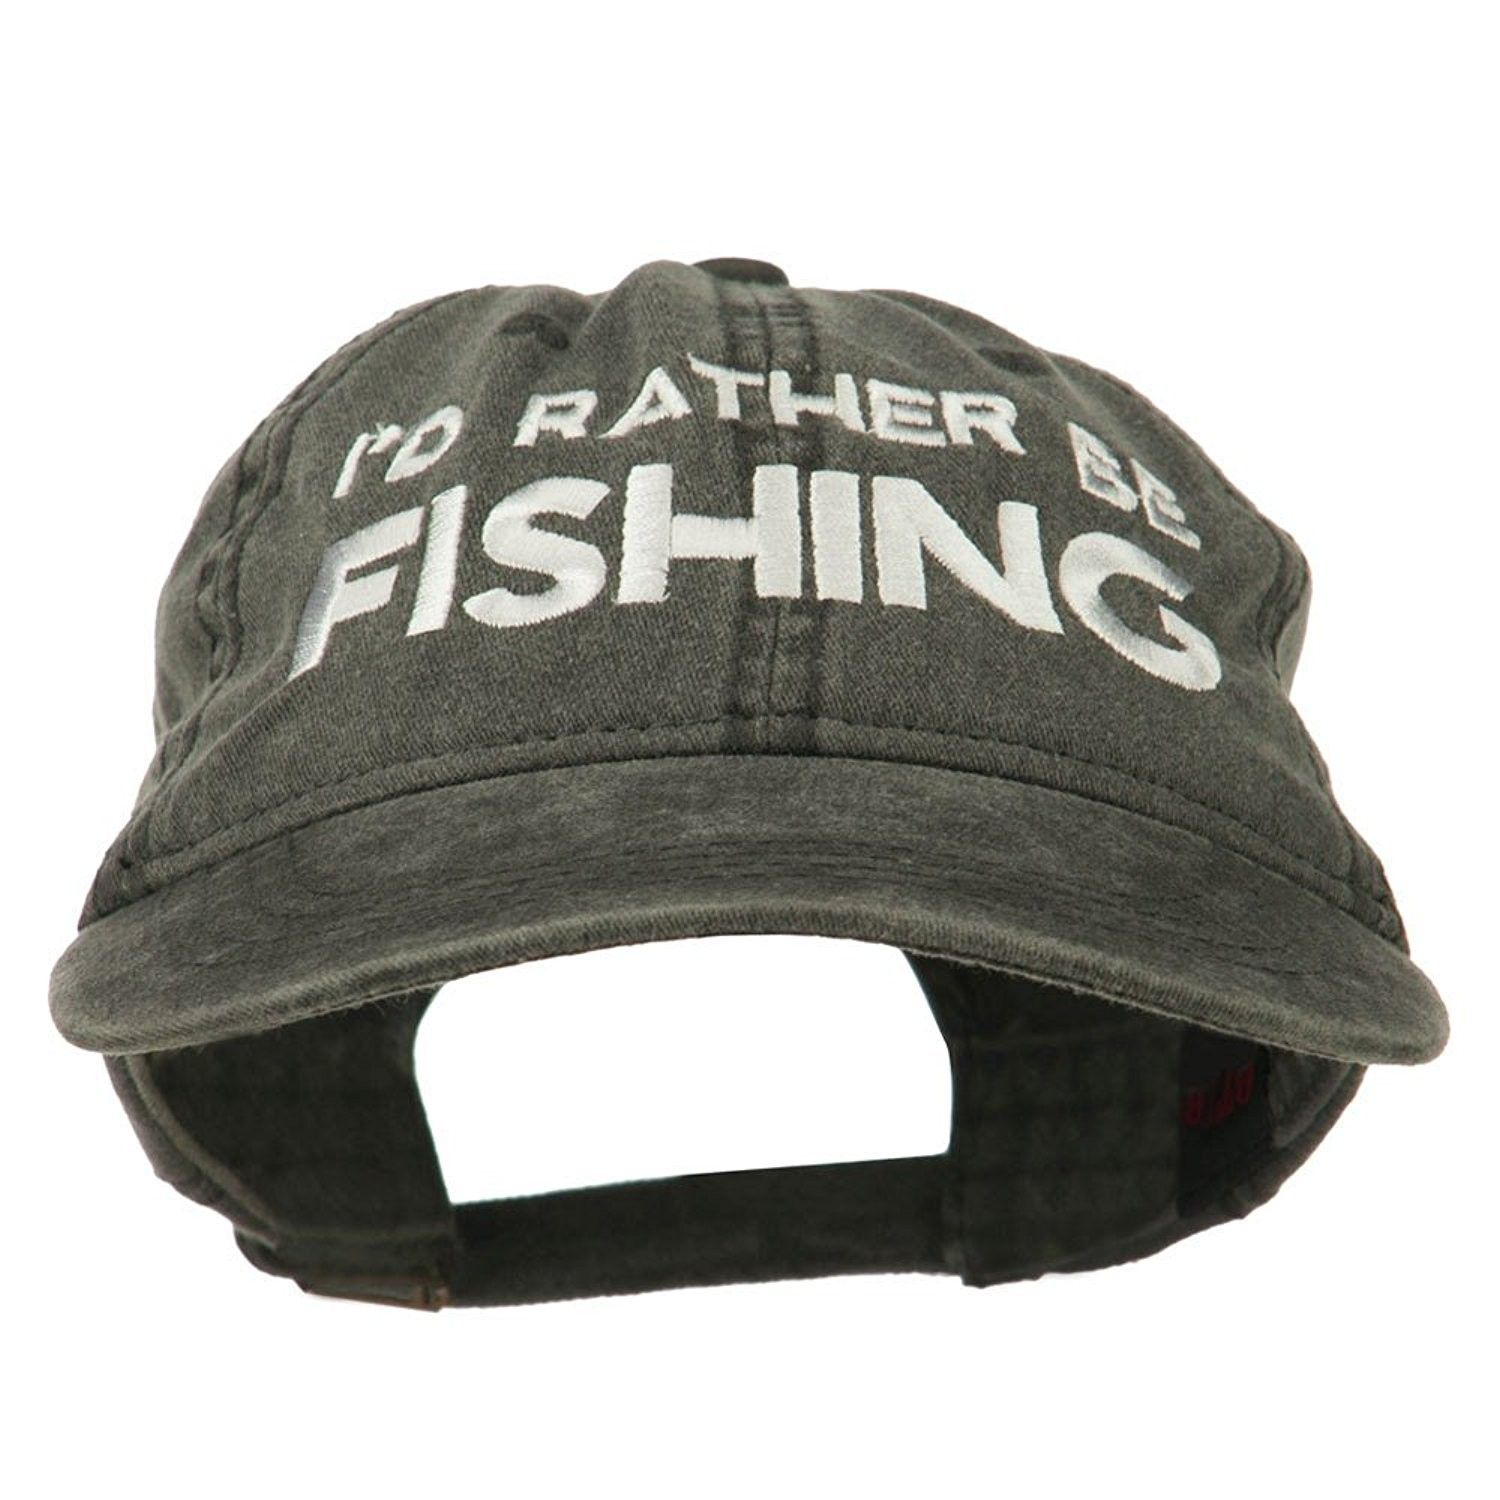 7ea93c7ad7d I d Rather Be Fishing Embroidered Washed Cotton Cap - Black - C211ONYVYUV -  Hats   Caps